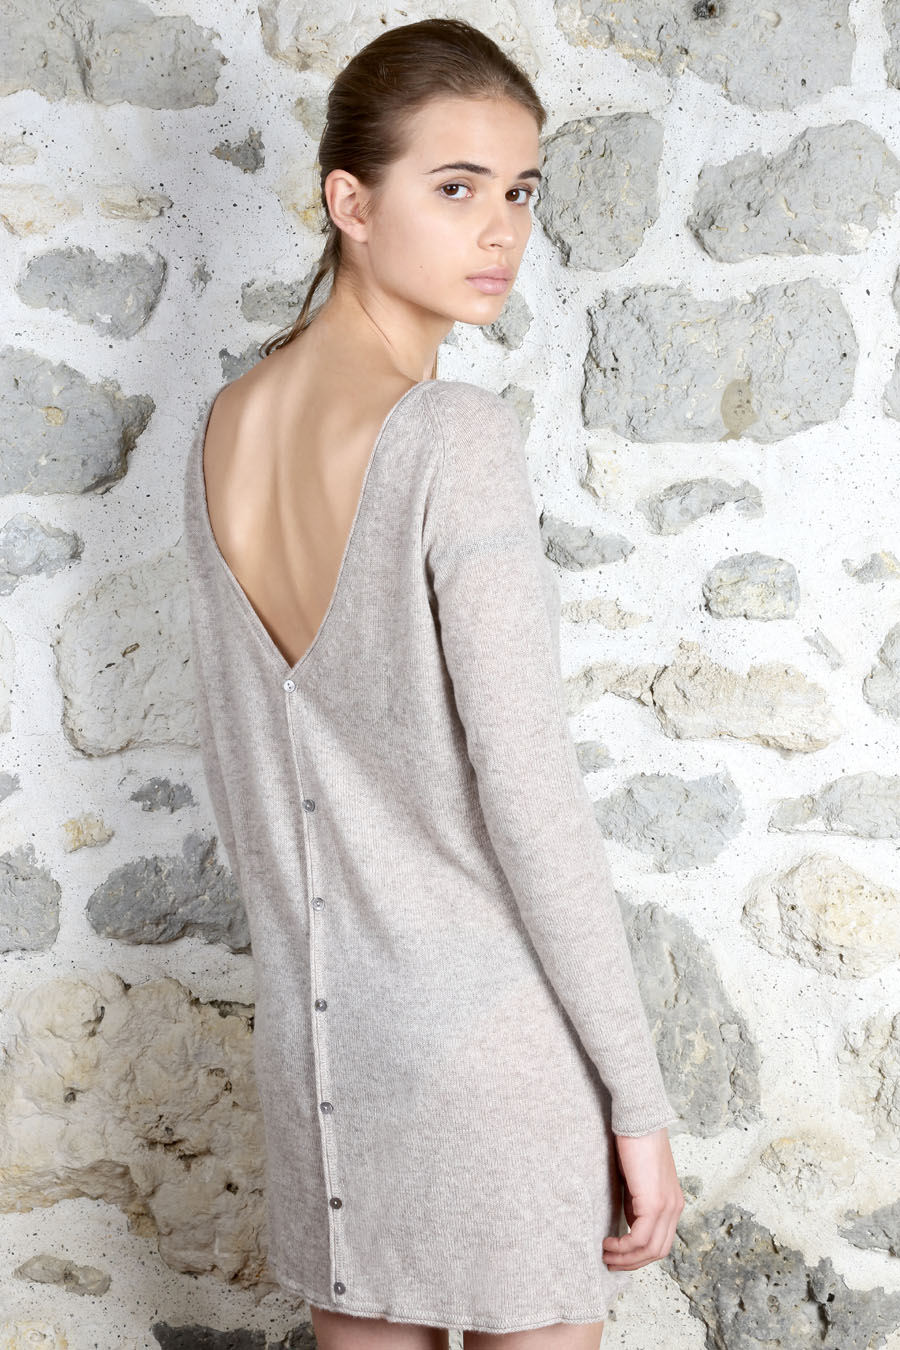 Collection Femme Robe Cachemire - Automne hiver 2015/16